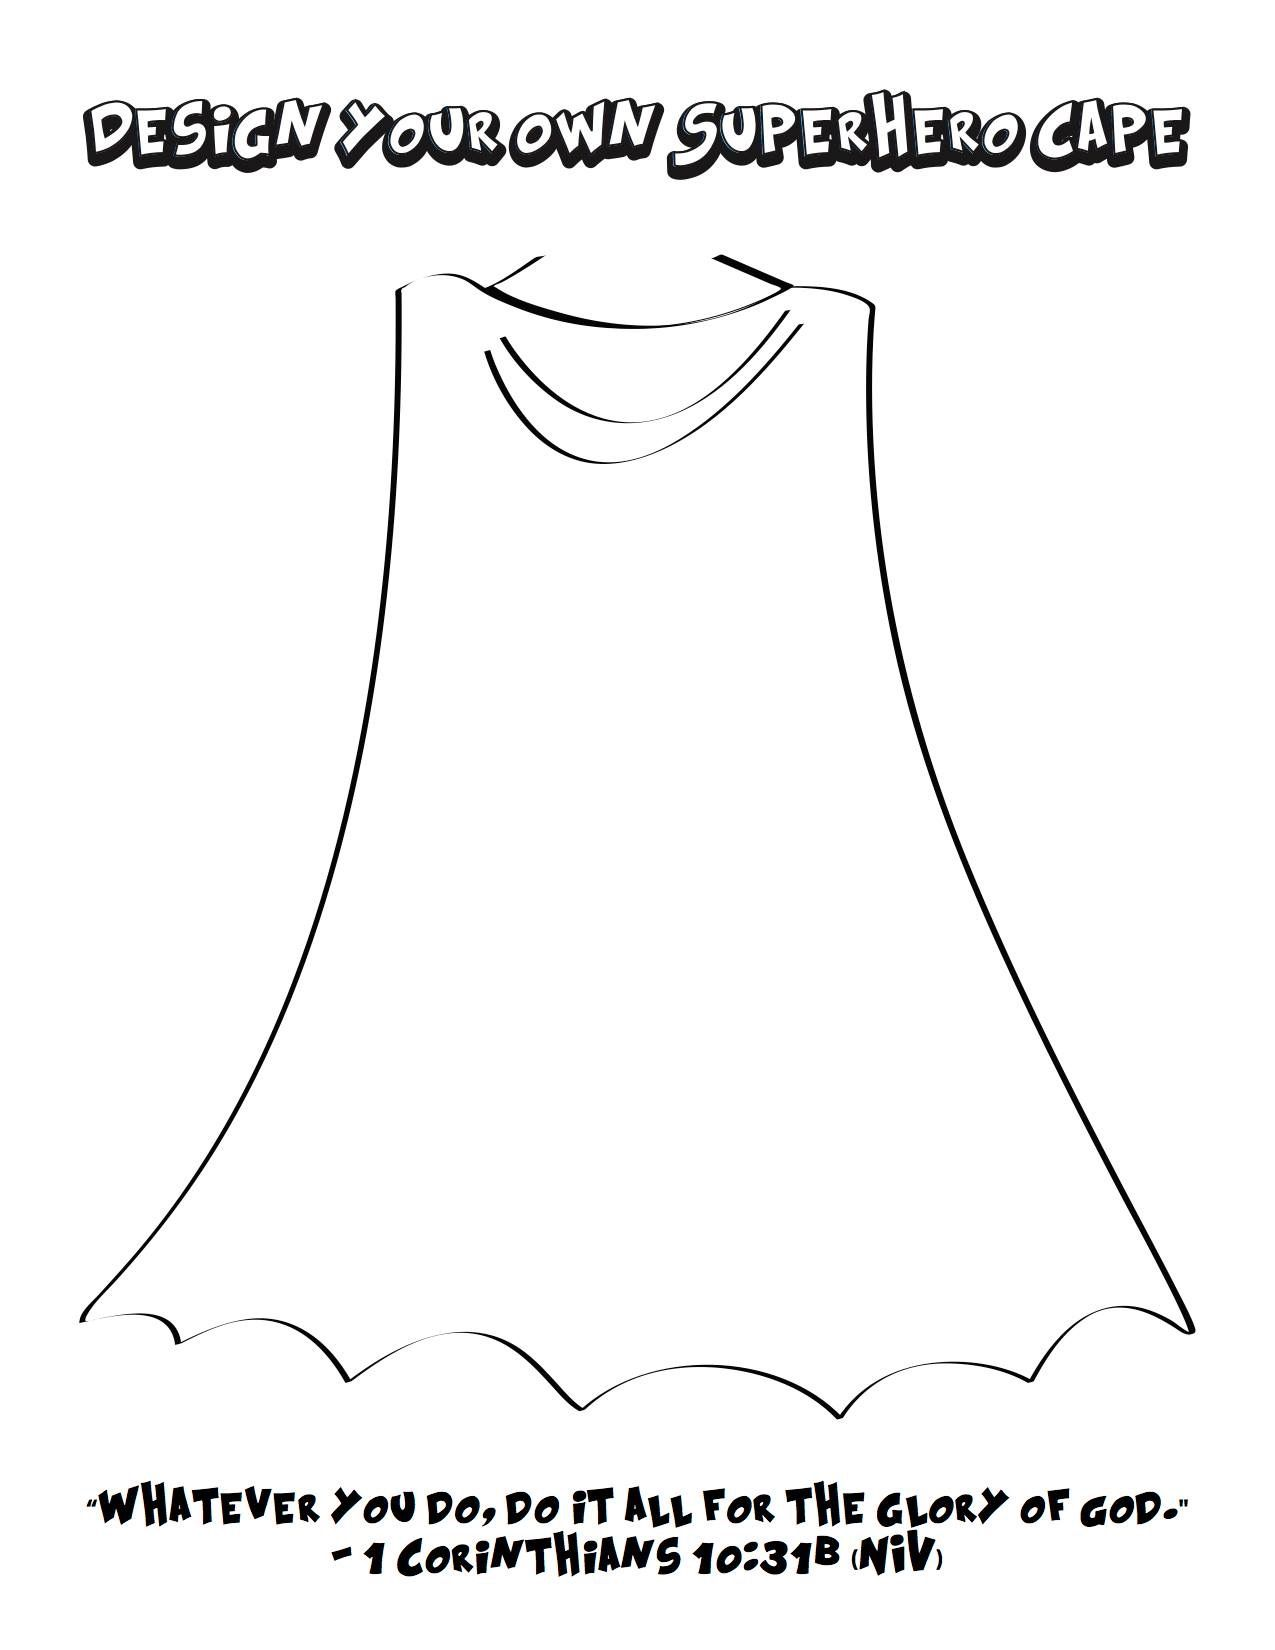 Design Your Own Superhero Cape